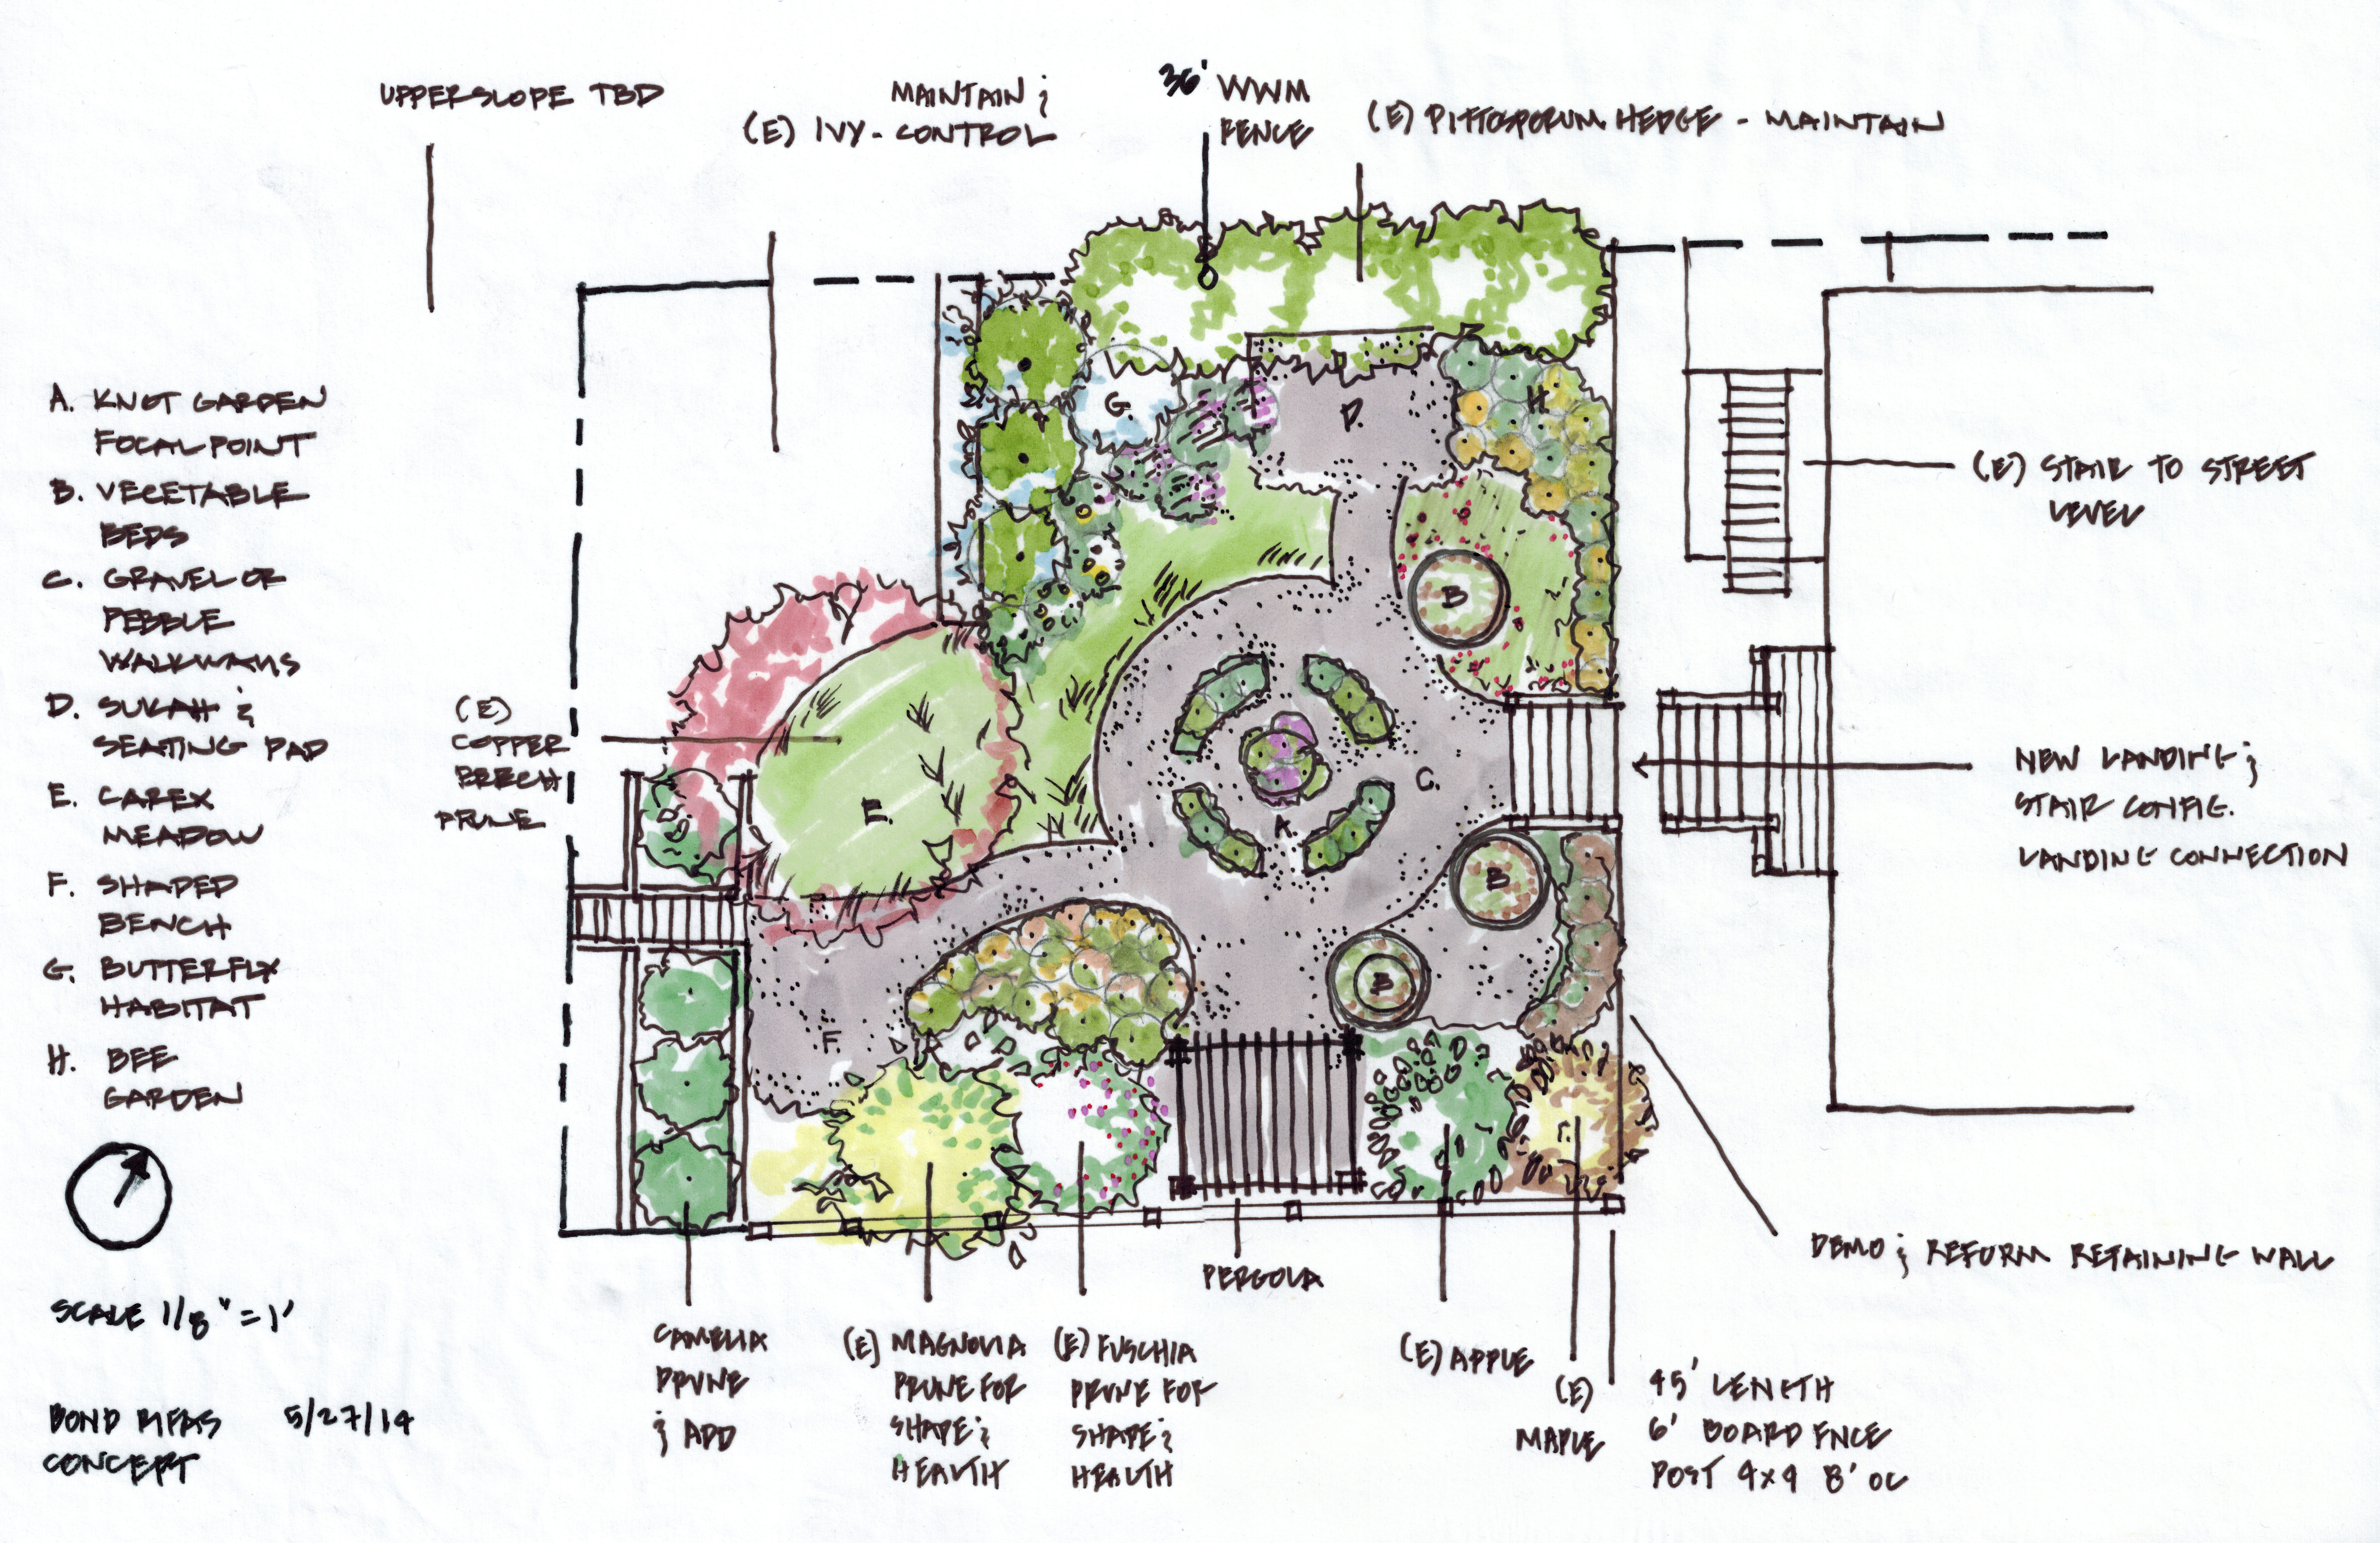 Berkeley cottage garden concept plan ian moore design for Plan your garden ideas